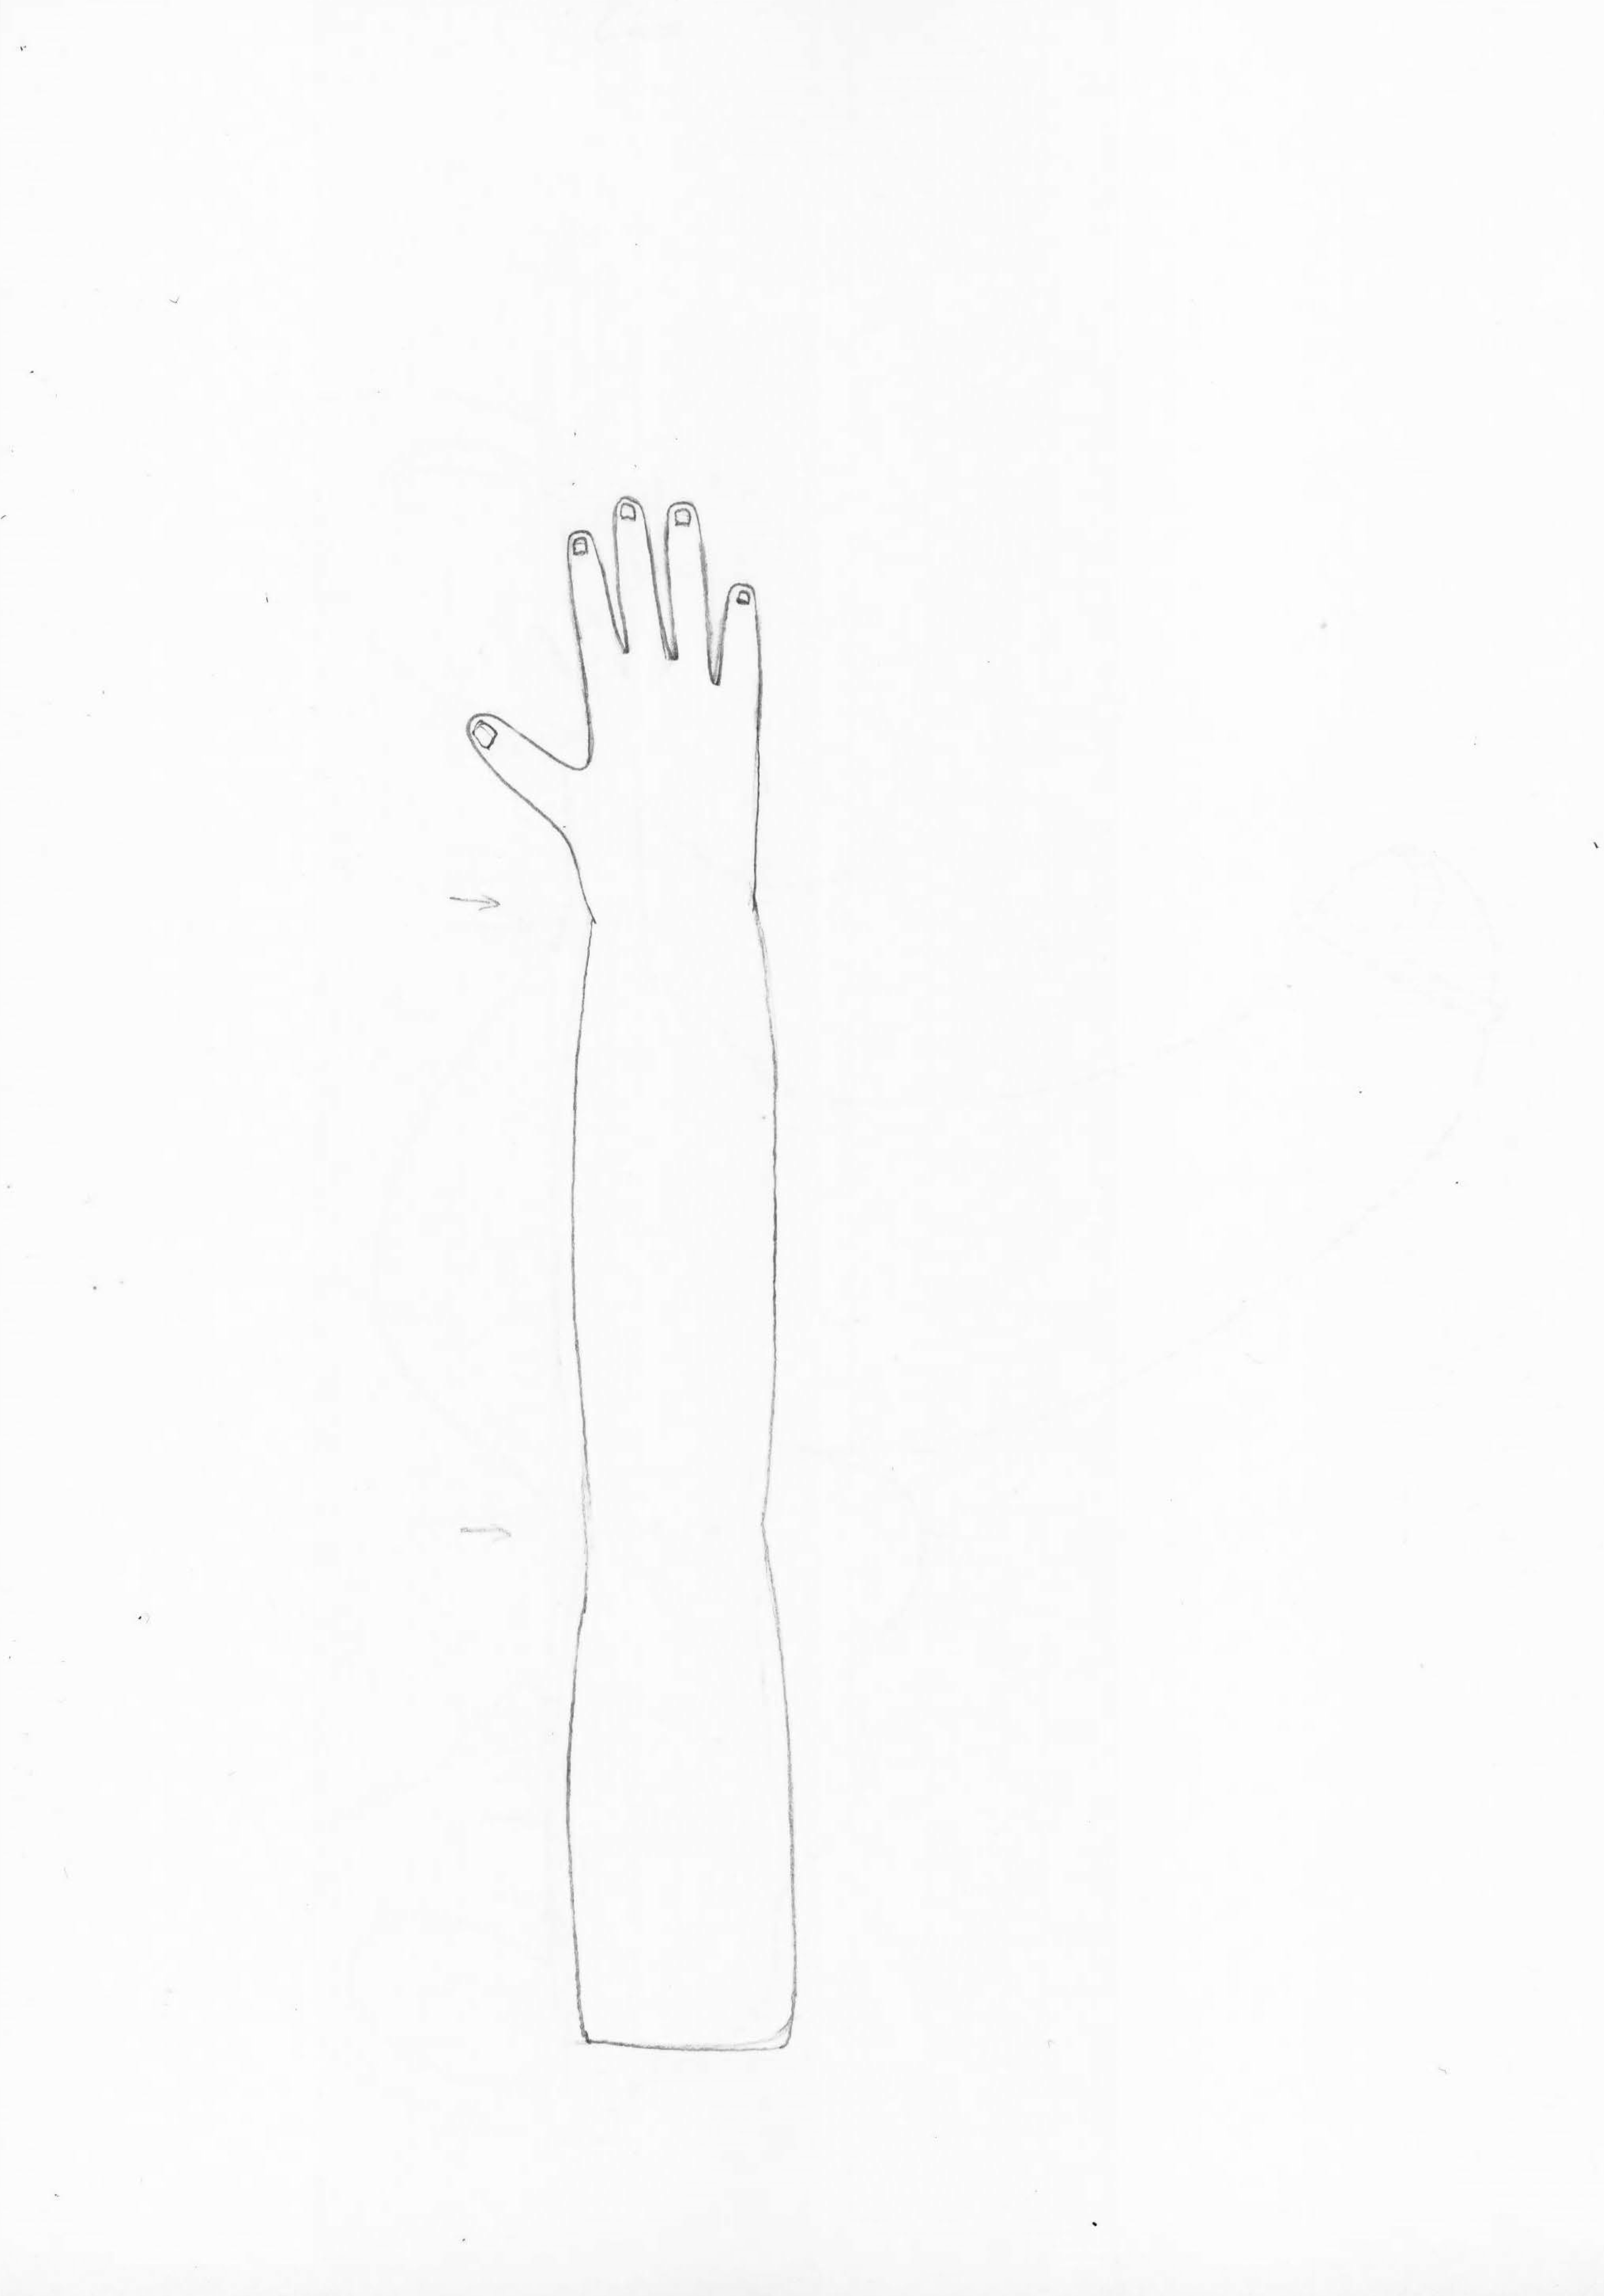 Georgia Sagri, Soma in orgasm as hand, 2017, pencil on paper, 29.5 × 20 cm